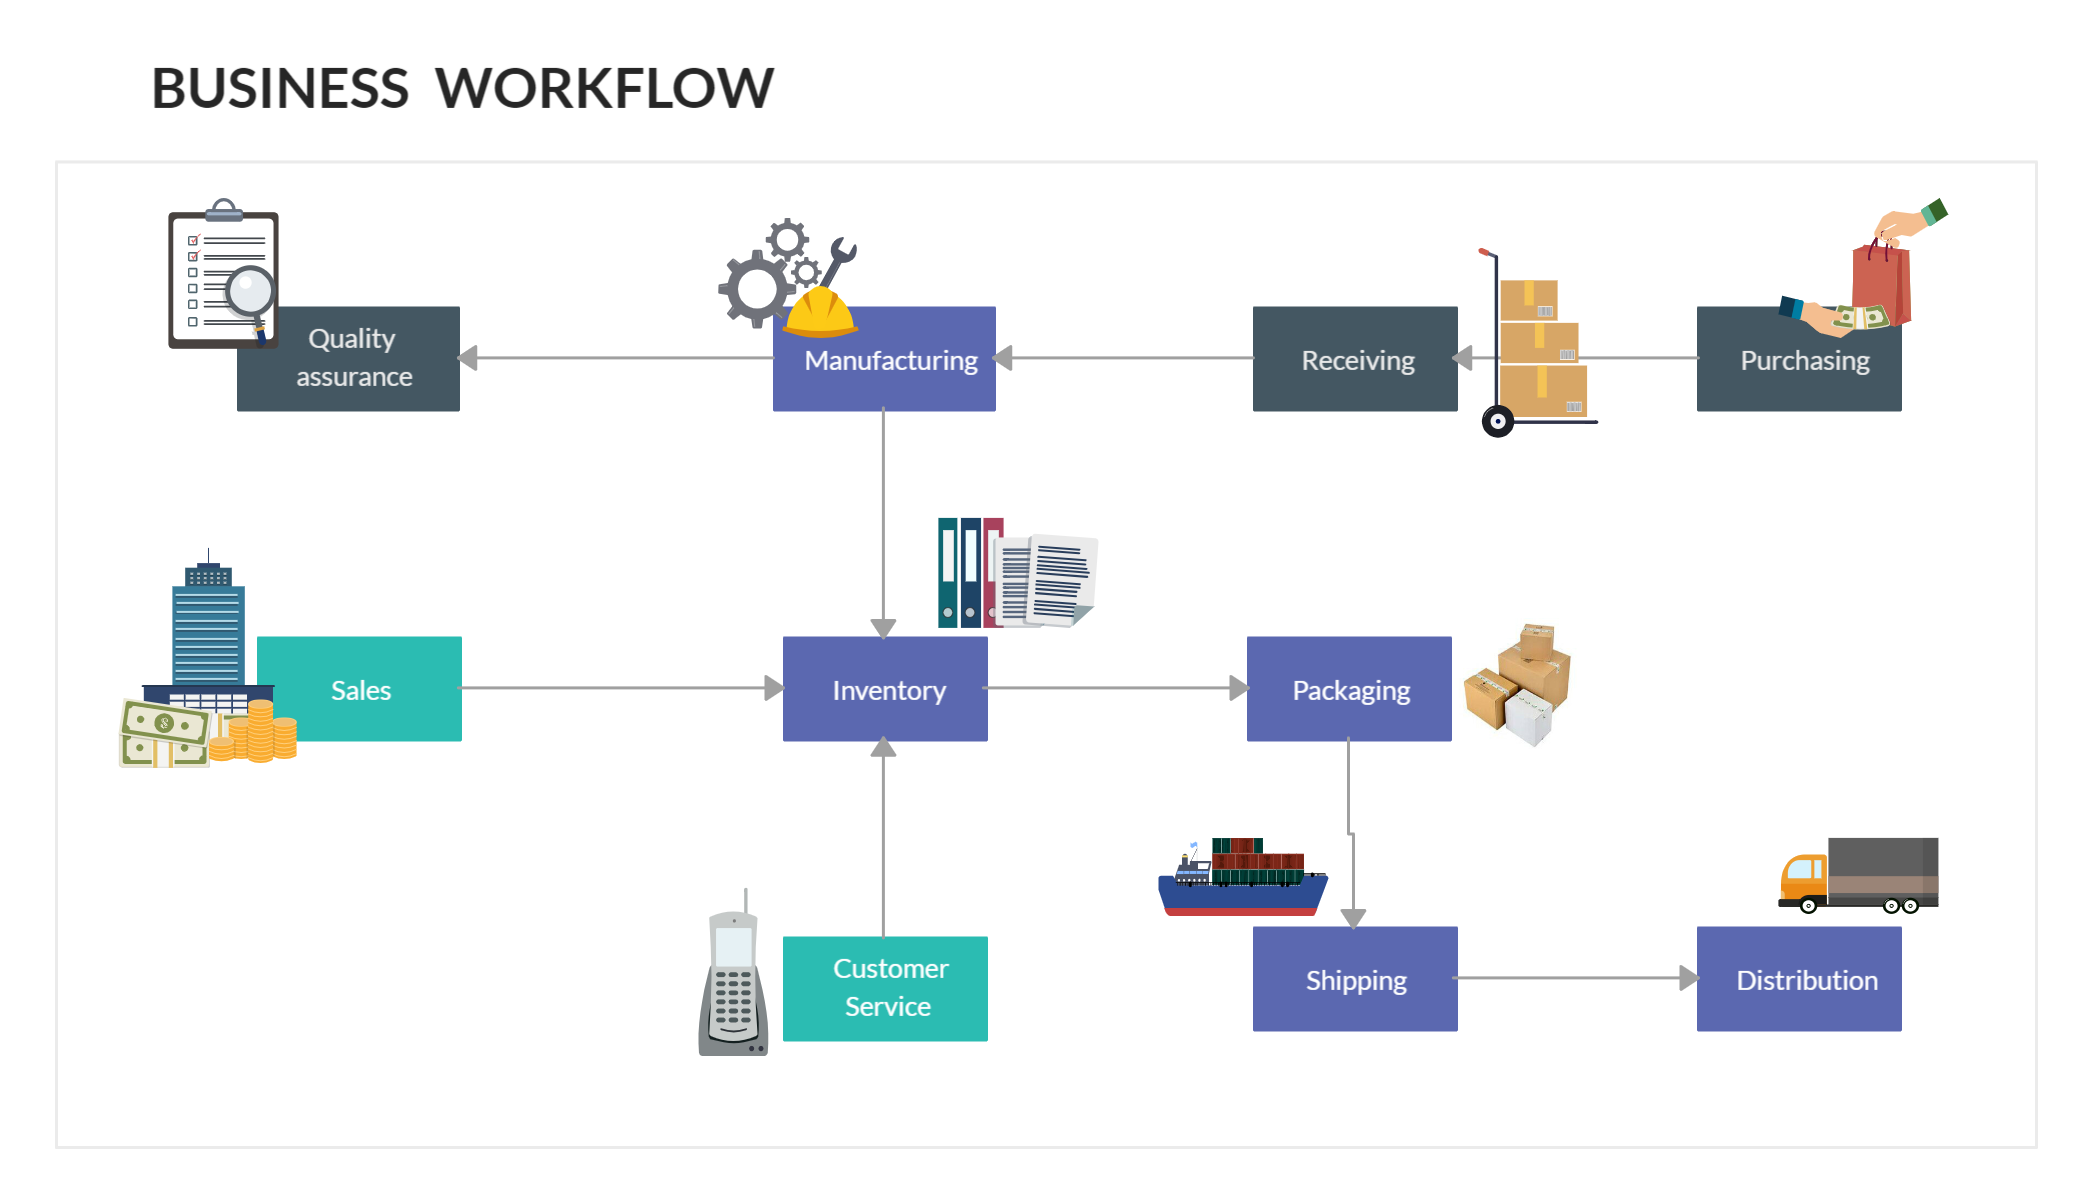 A Business Workflow Diagram Provides A Graphic Overview Of